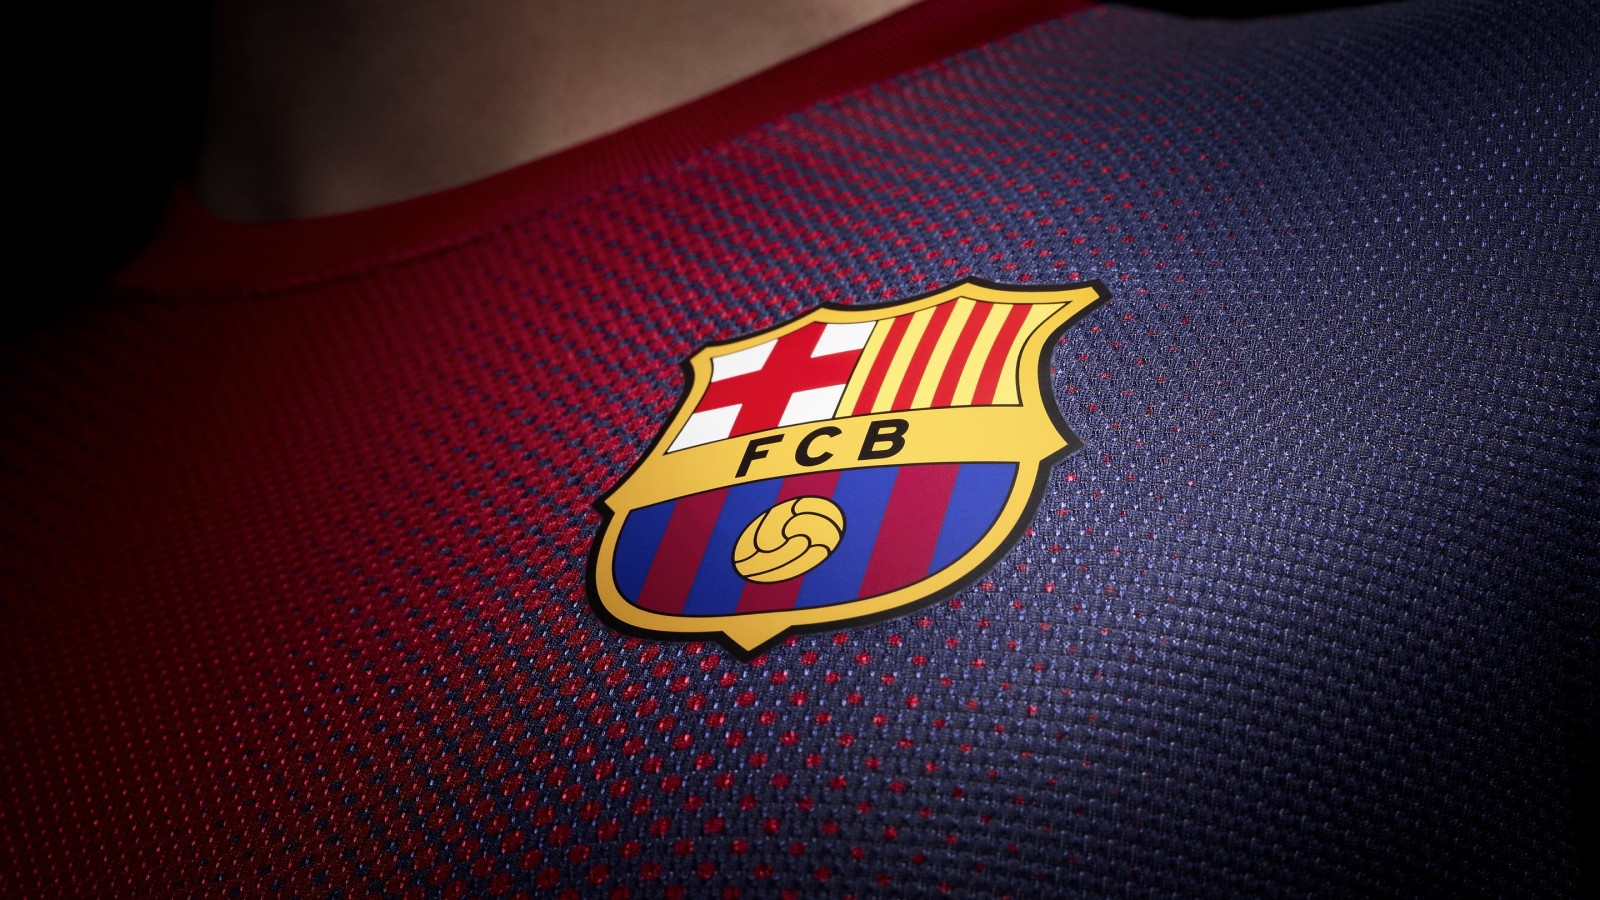 FC Barcelona Logo Shirt Wallpaper for Desktop 1600x900